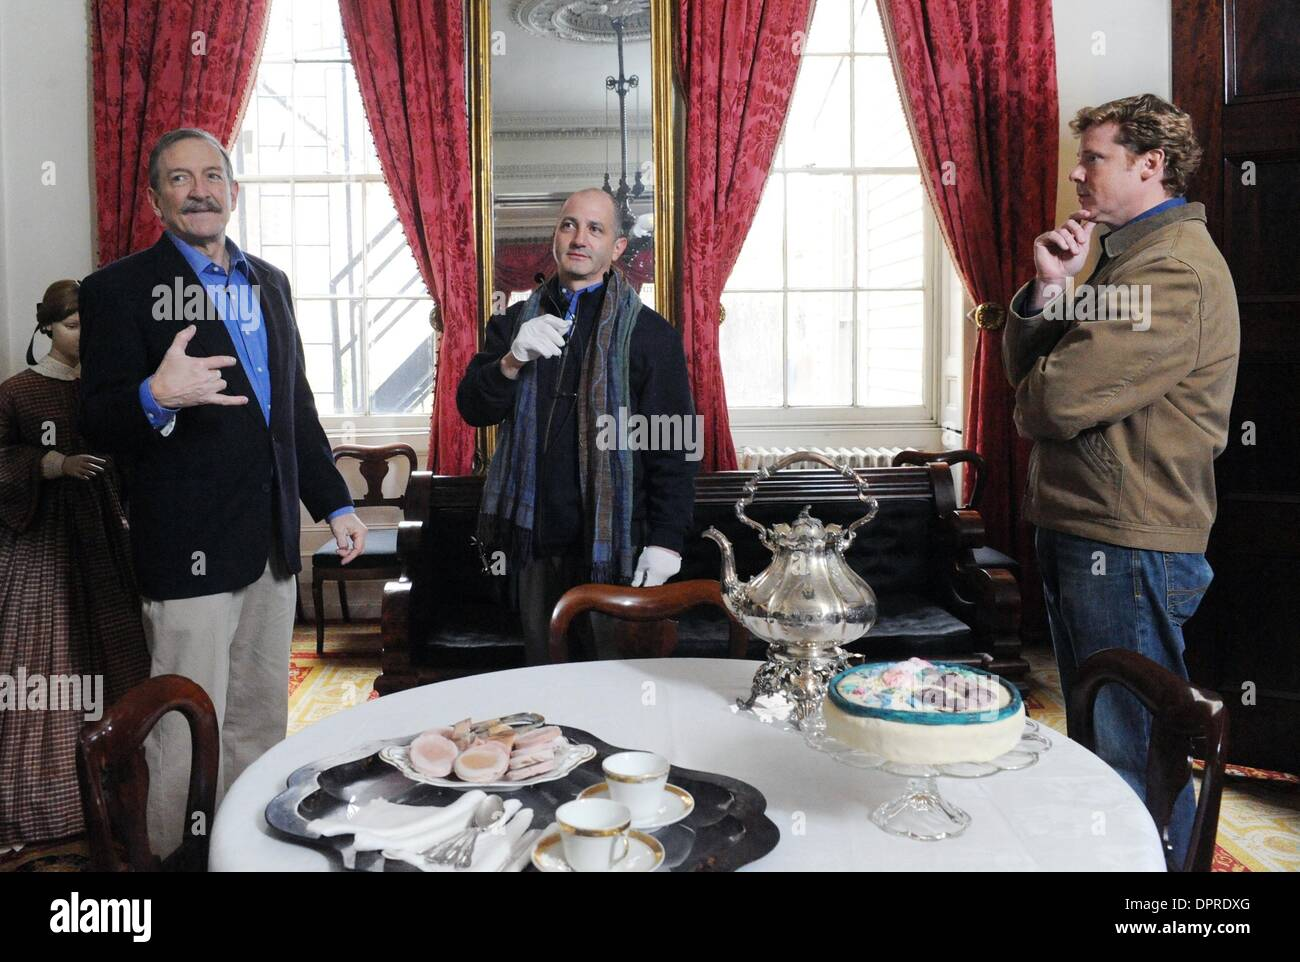 Dec 04, 2008 - Manhattan, New York, USA - CHARLES LOCKWOOD (L), director DAVID VOS (C) and host KEVIN O'CONNOR work out a scene. 'This Old House' taping with host Kevin O'Connor  and special guest Charles Lockwood at the historic Merchant's House Museum in the East Village.  (Credit Image: © Bryan Smith/ZUMA Press) RESTRICTIONS:  * New York City Newspapers Rights OUT * - Stock Image